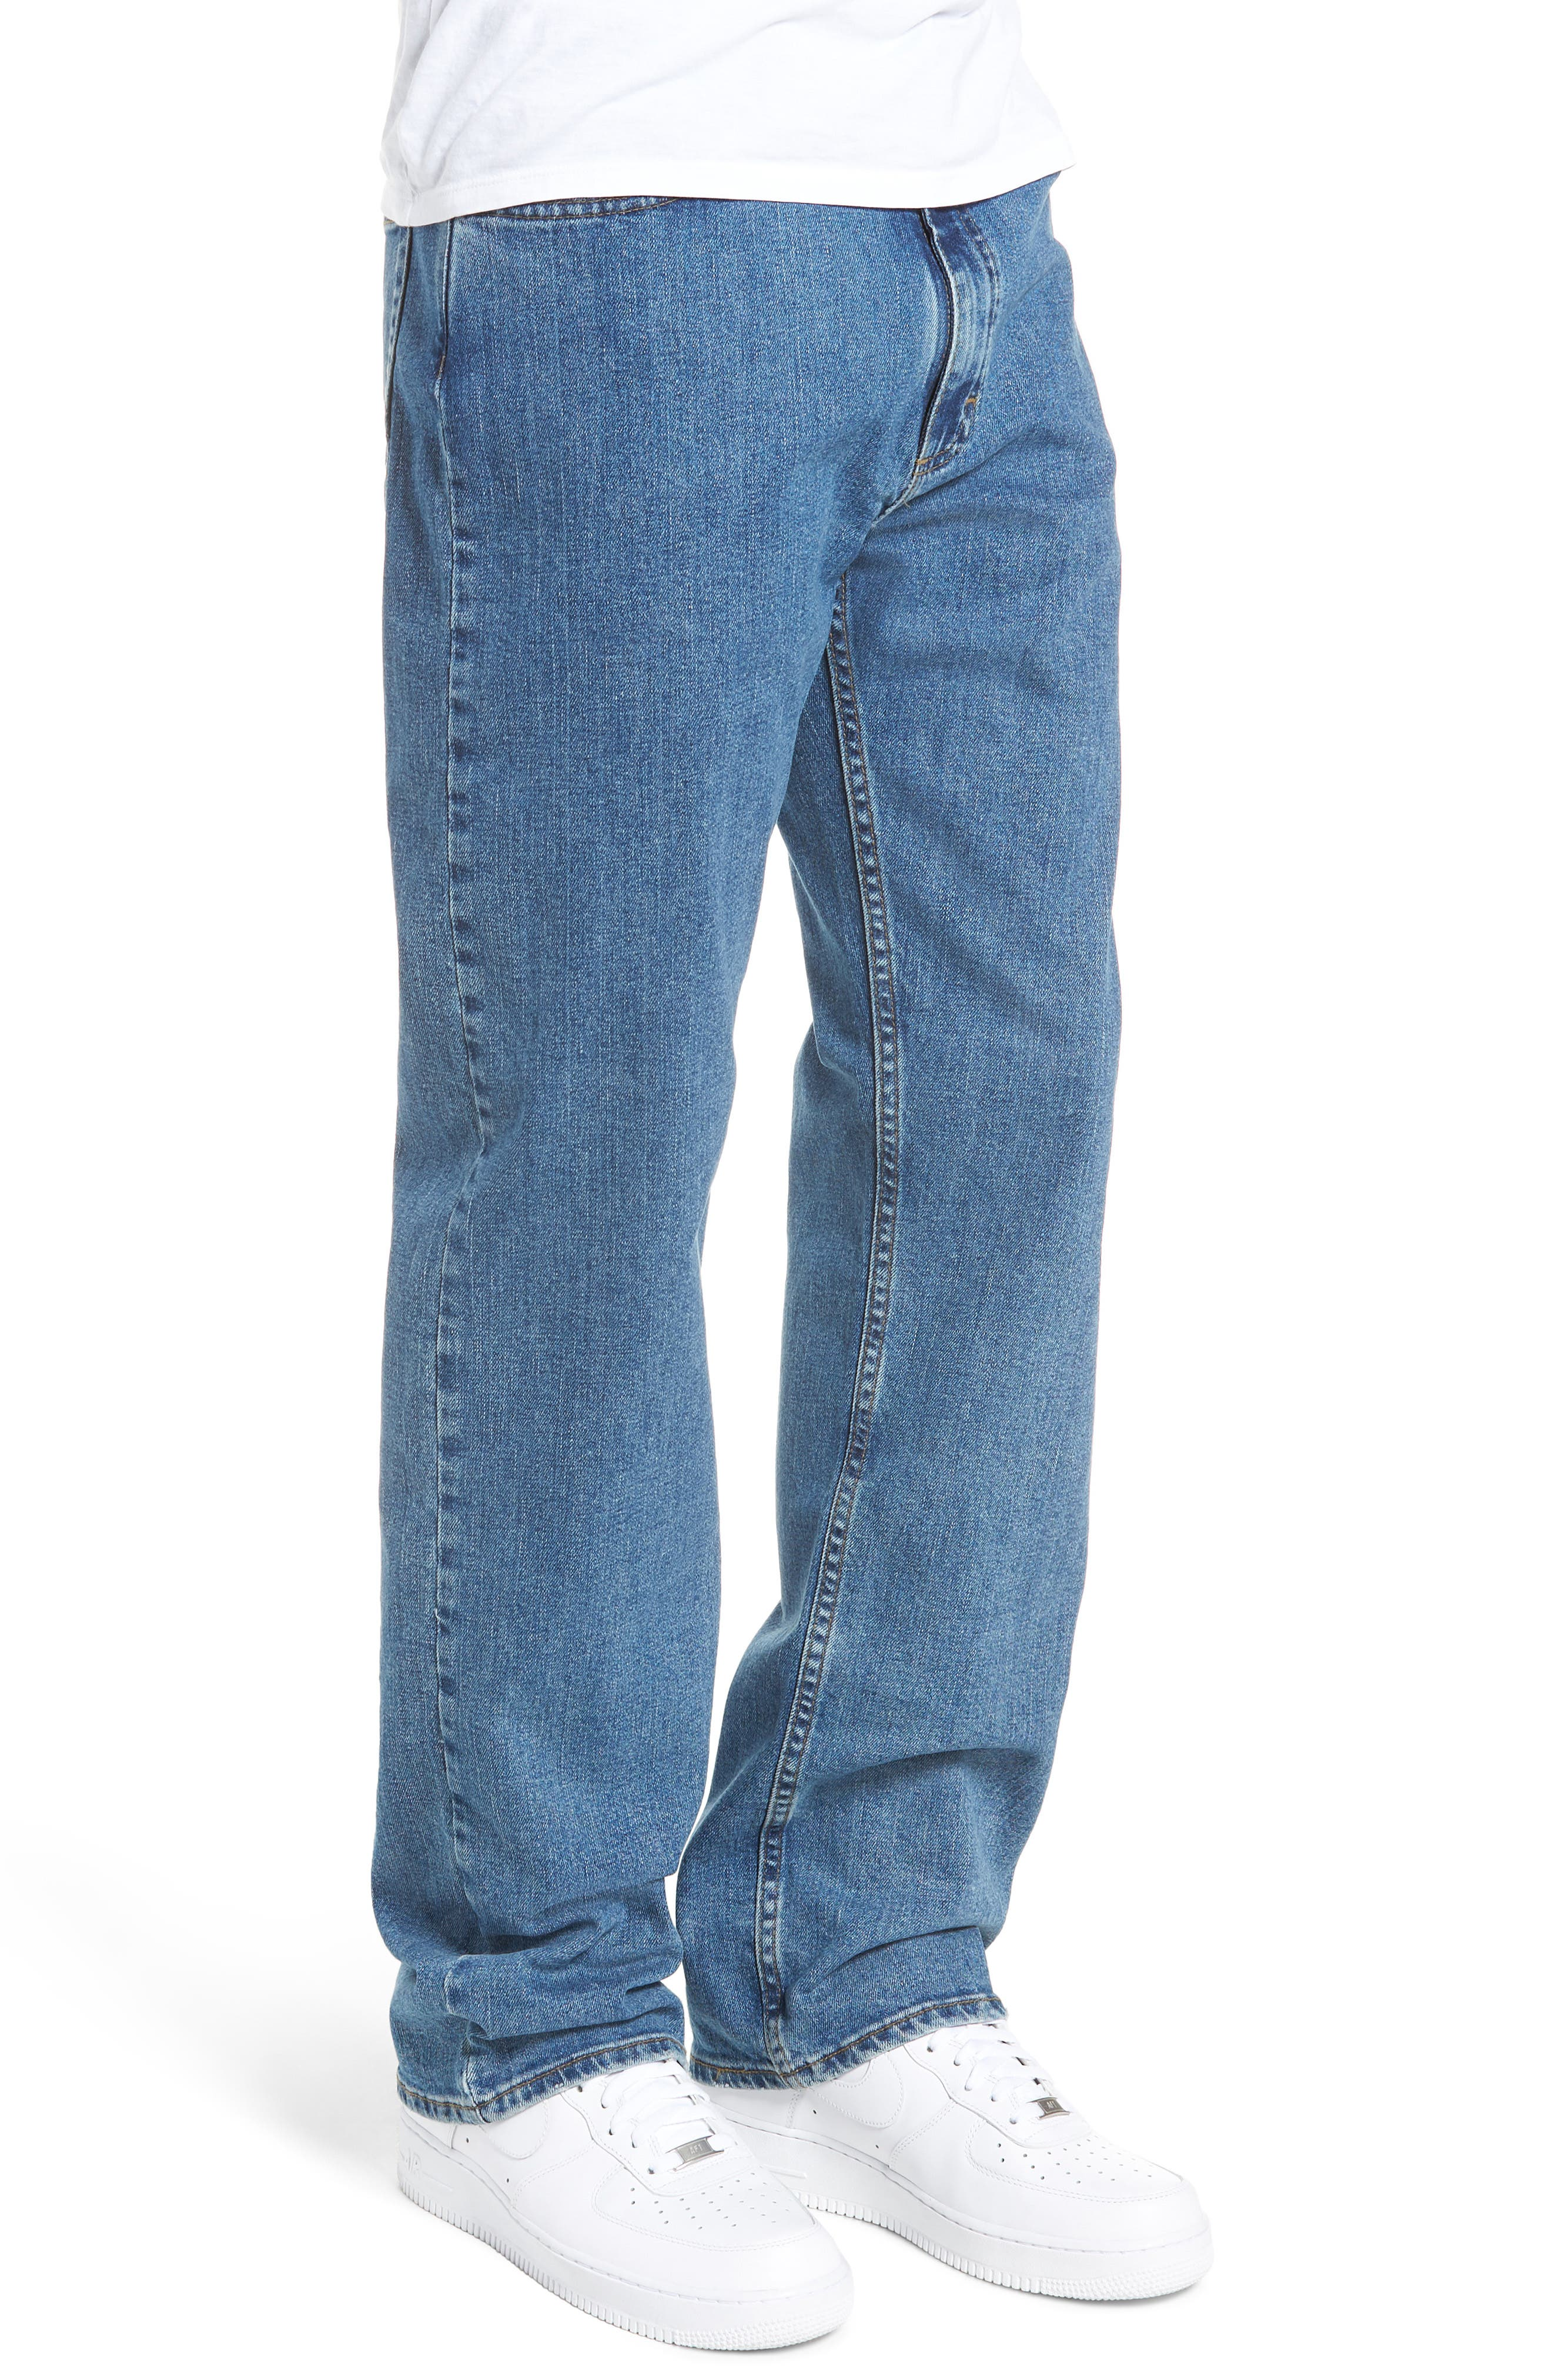 V96 Relaxed Fit Jeans,                             Alternate thumbnail 3, color,                             STONE WASH